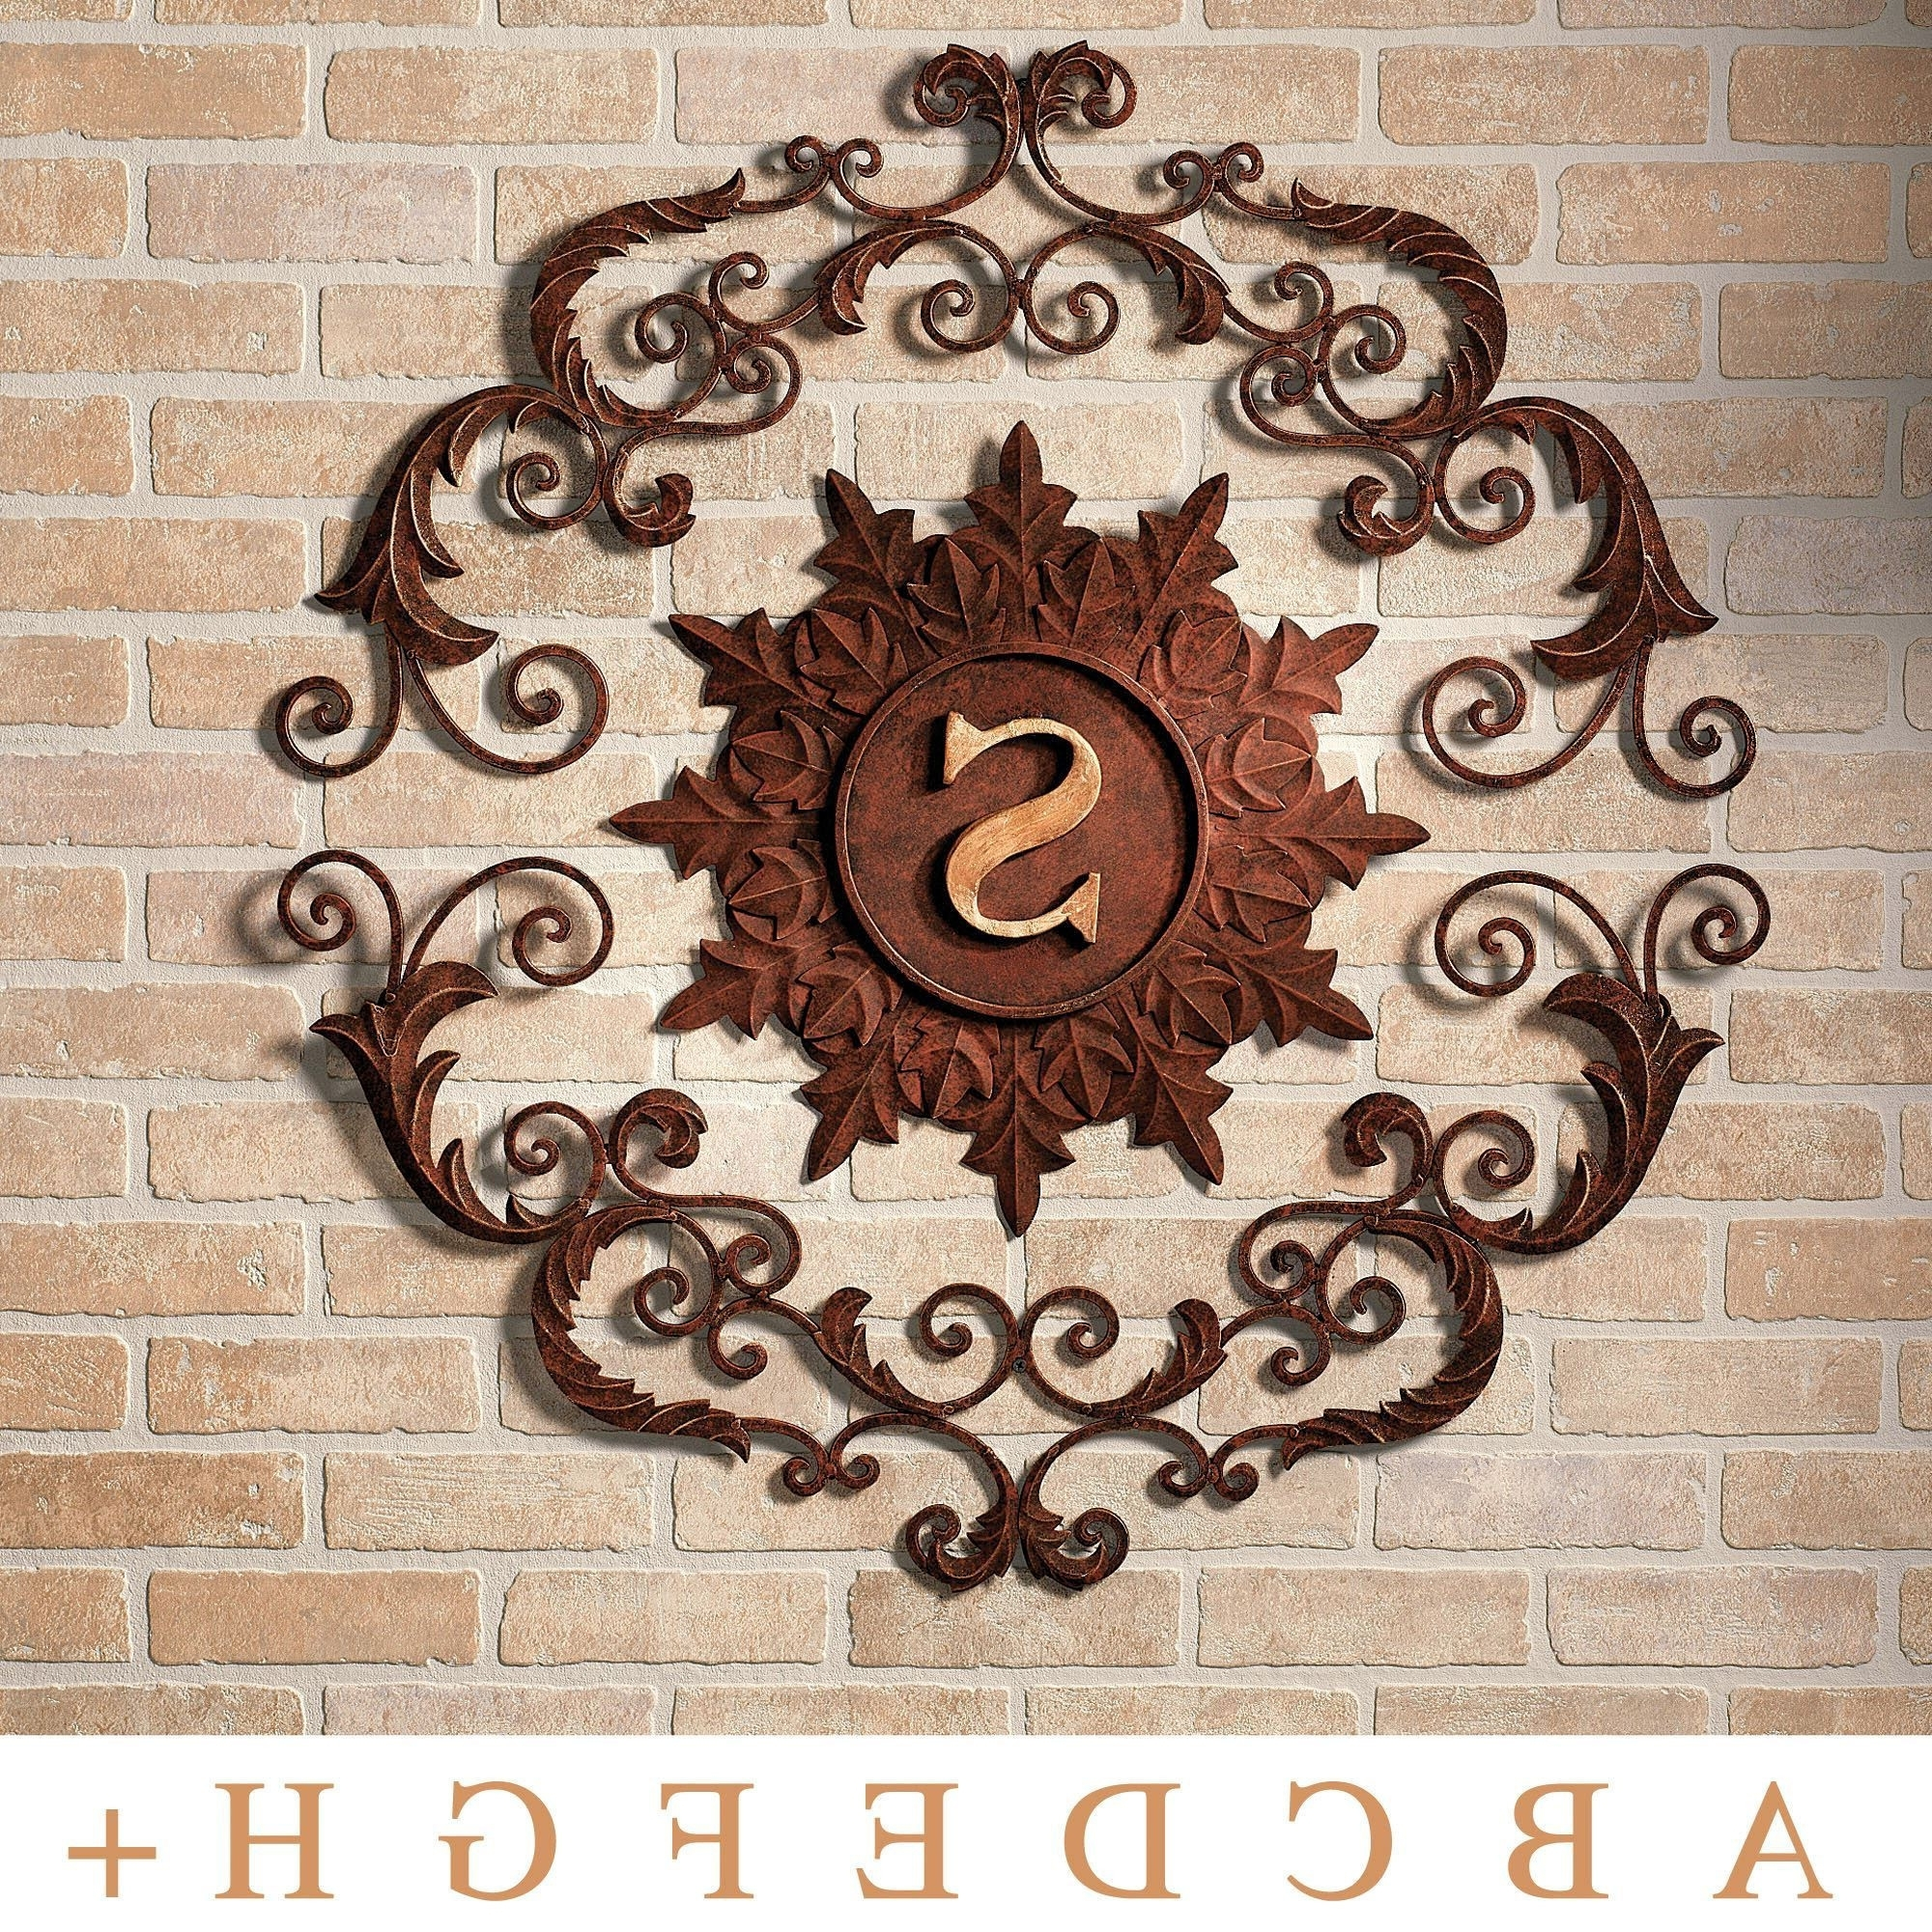 31 New Outdoor Sun Wall Art Inspiration Of Metal Outdoor Wall Art Inside Preferred Outdoor Sun Wall Art (View 1 of 15)